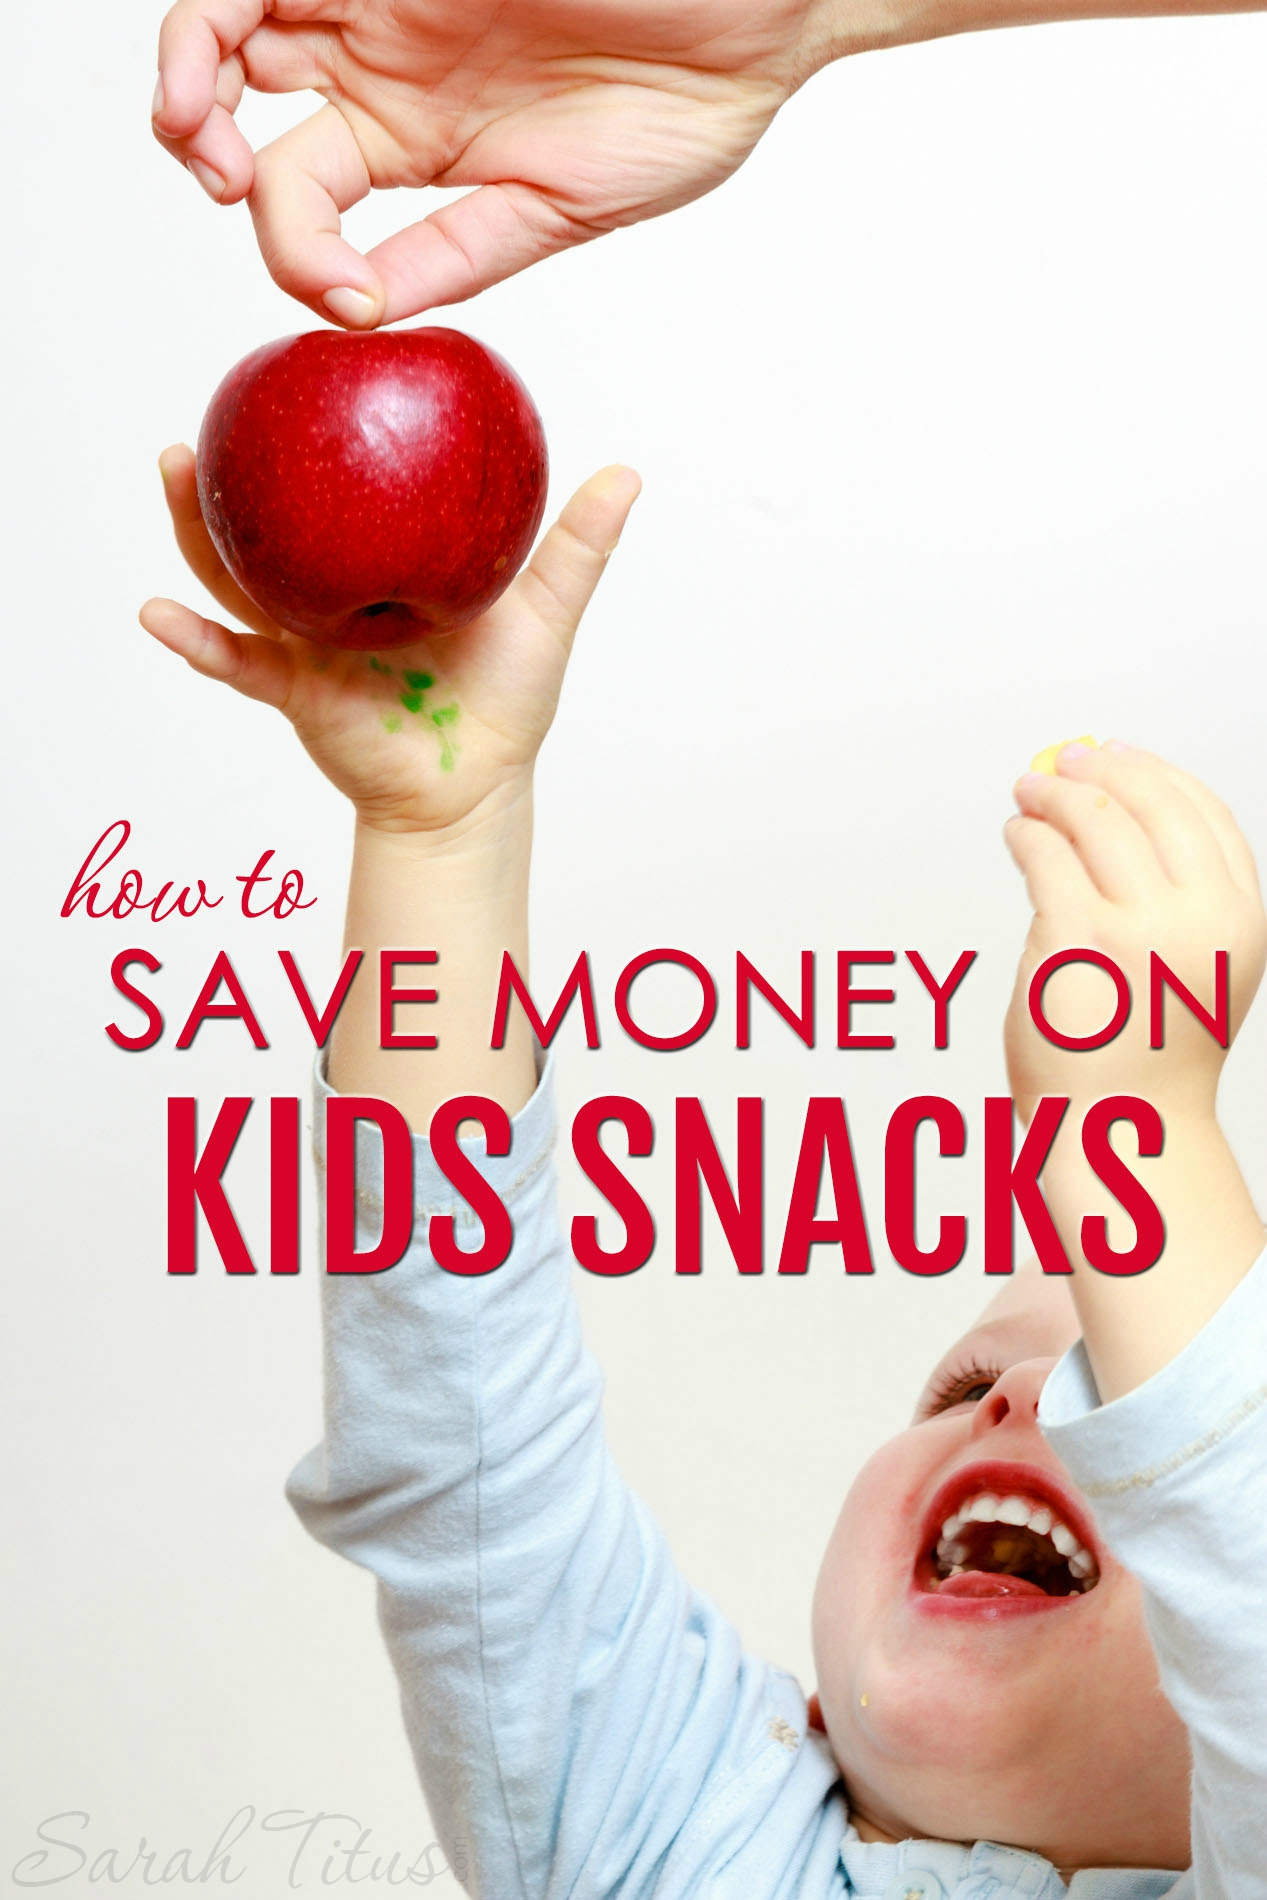 Snacks can get super expensive for kids if you're not careful. They can quickly eat up your grocery budget, leaving you with no money for the rest of your groceries. Here are some great tricks on how to save money on kids snacks that will solve that problem!